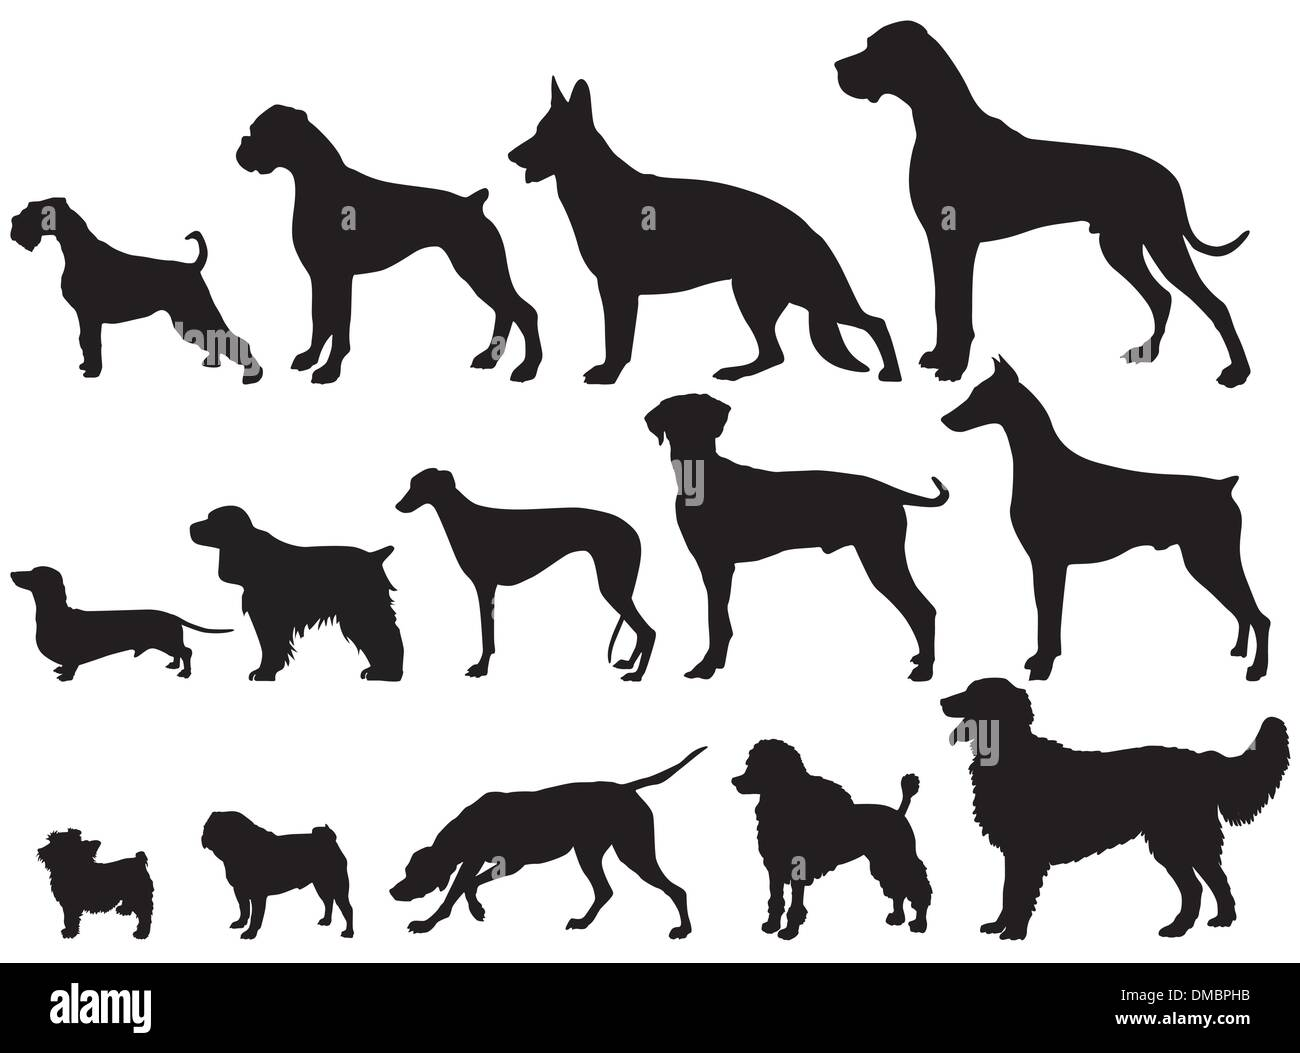 Dogs and Dog Breeds - Stock Image